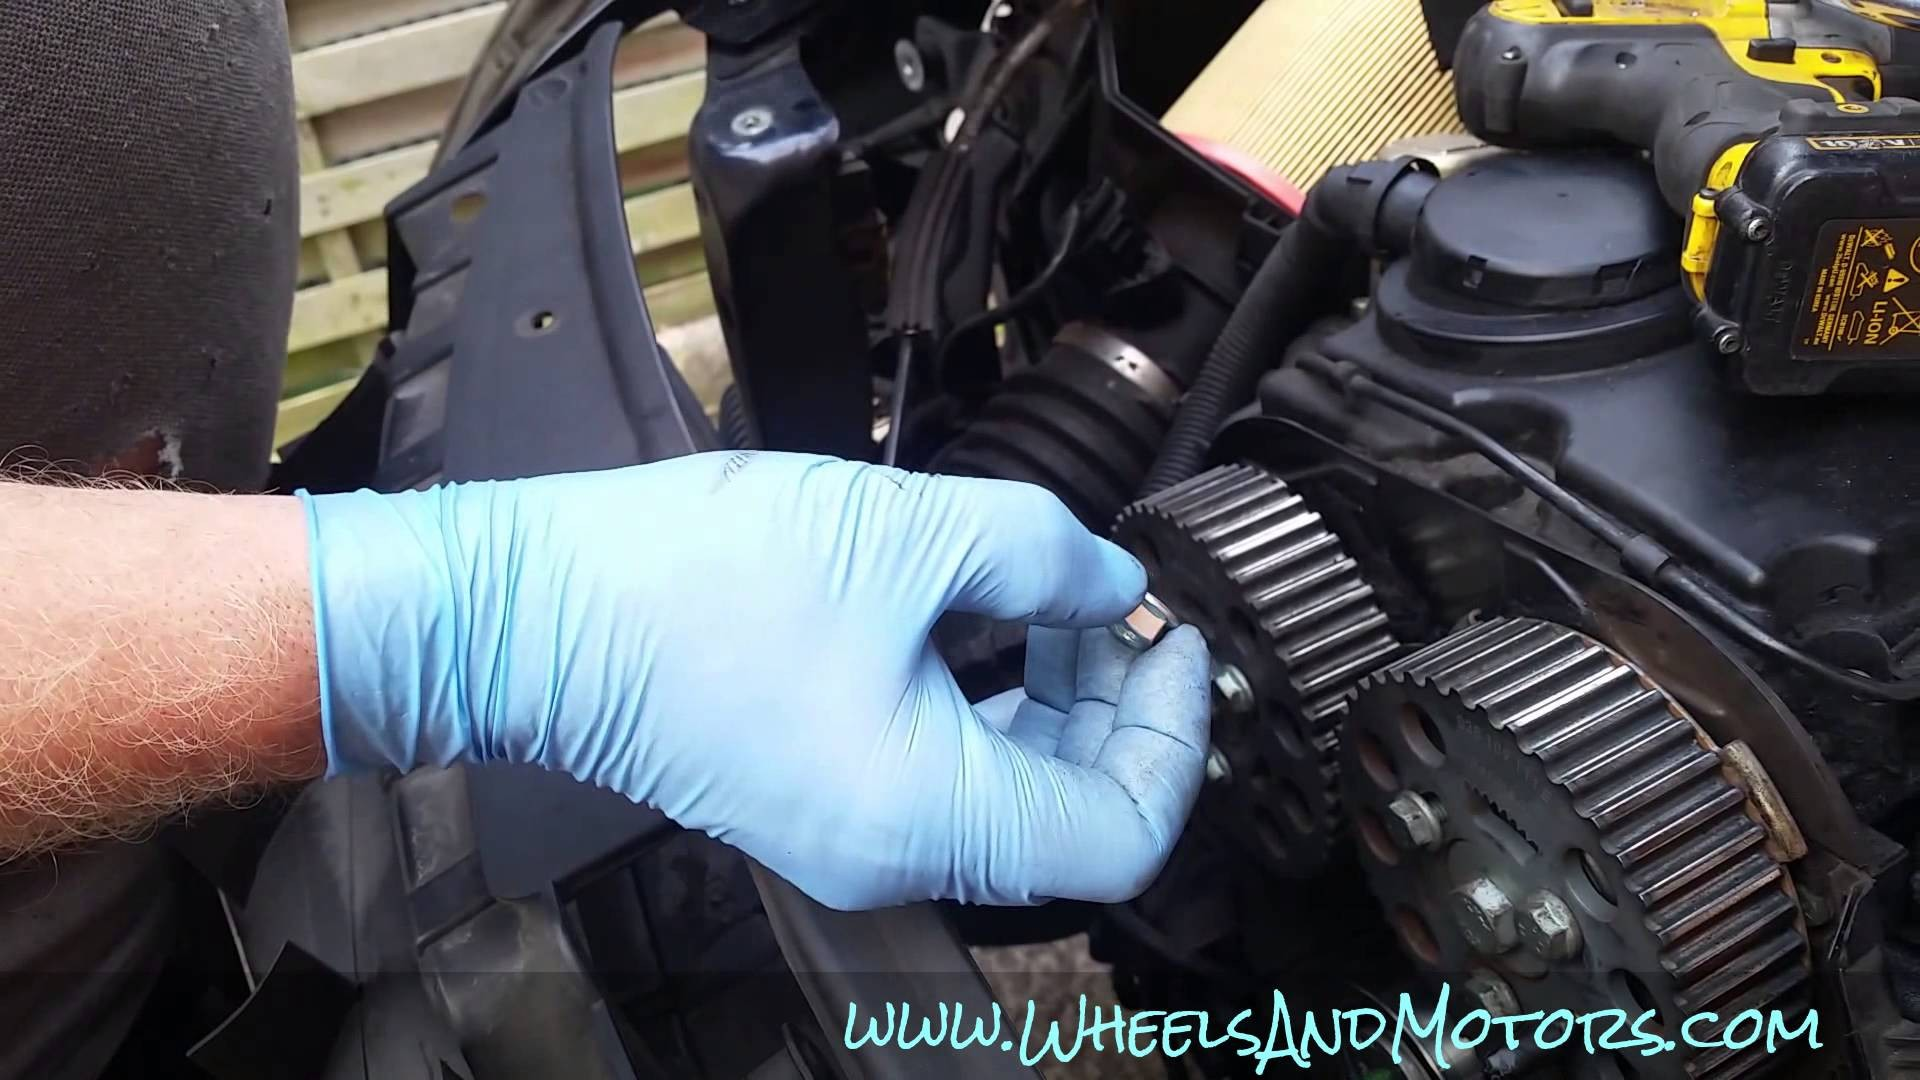 2004 Jetta Engine Diagram How to Replace Timing Belt Cambelt and Water Pump On 2 0 Tdi Of 2004 Jetta Engine Diagram